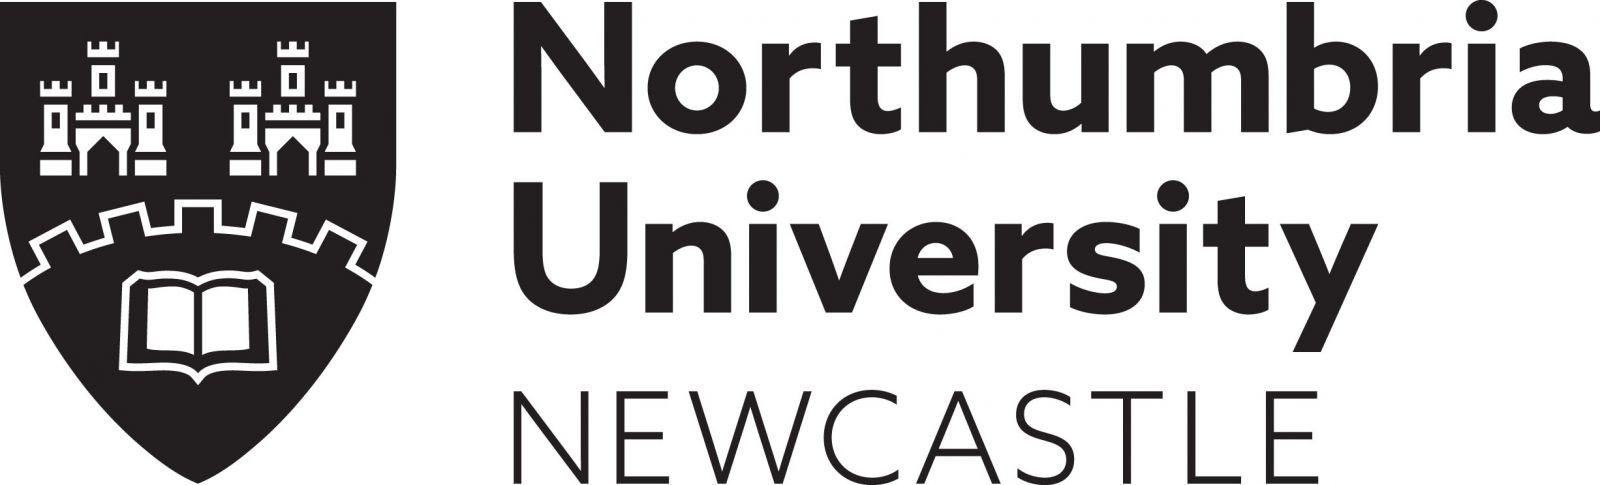 Northumbria-University-Newcastle